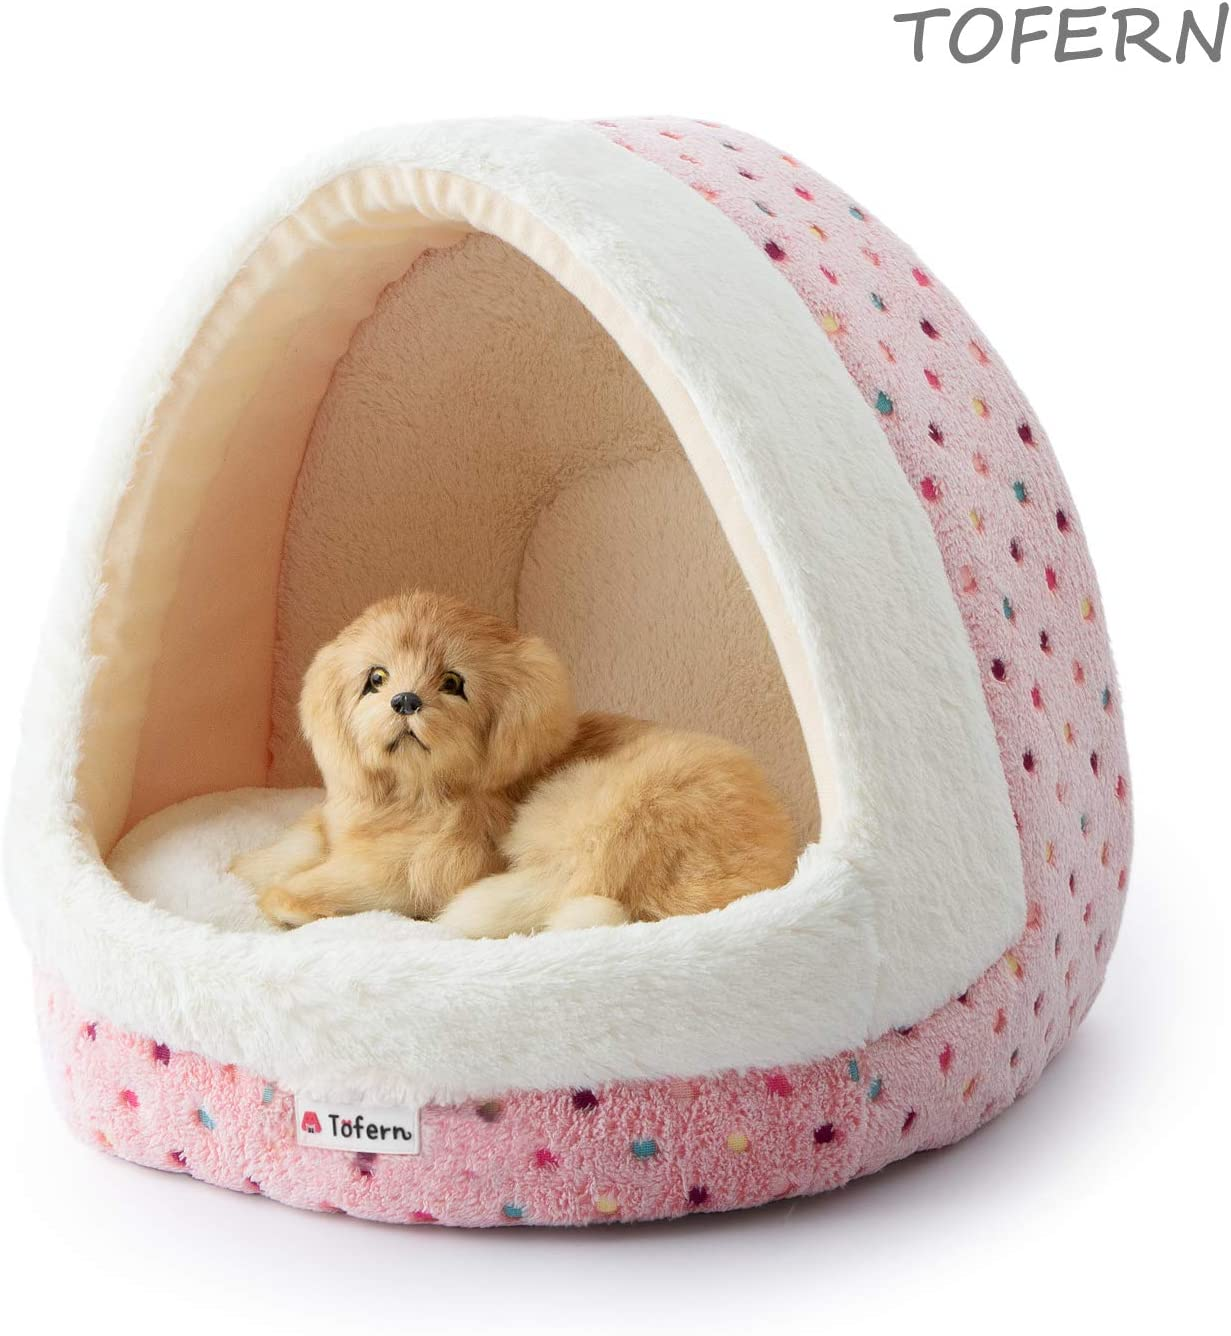 Tofern Pet Igloo for Puppies